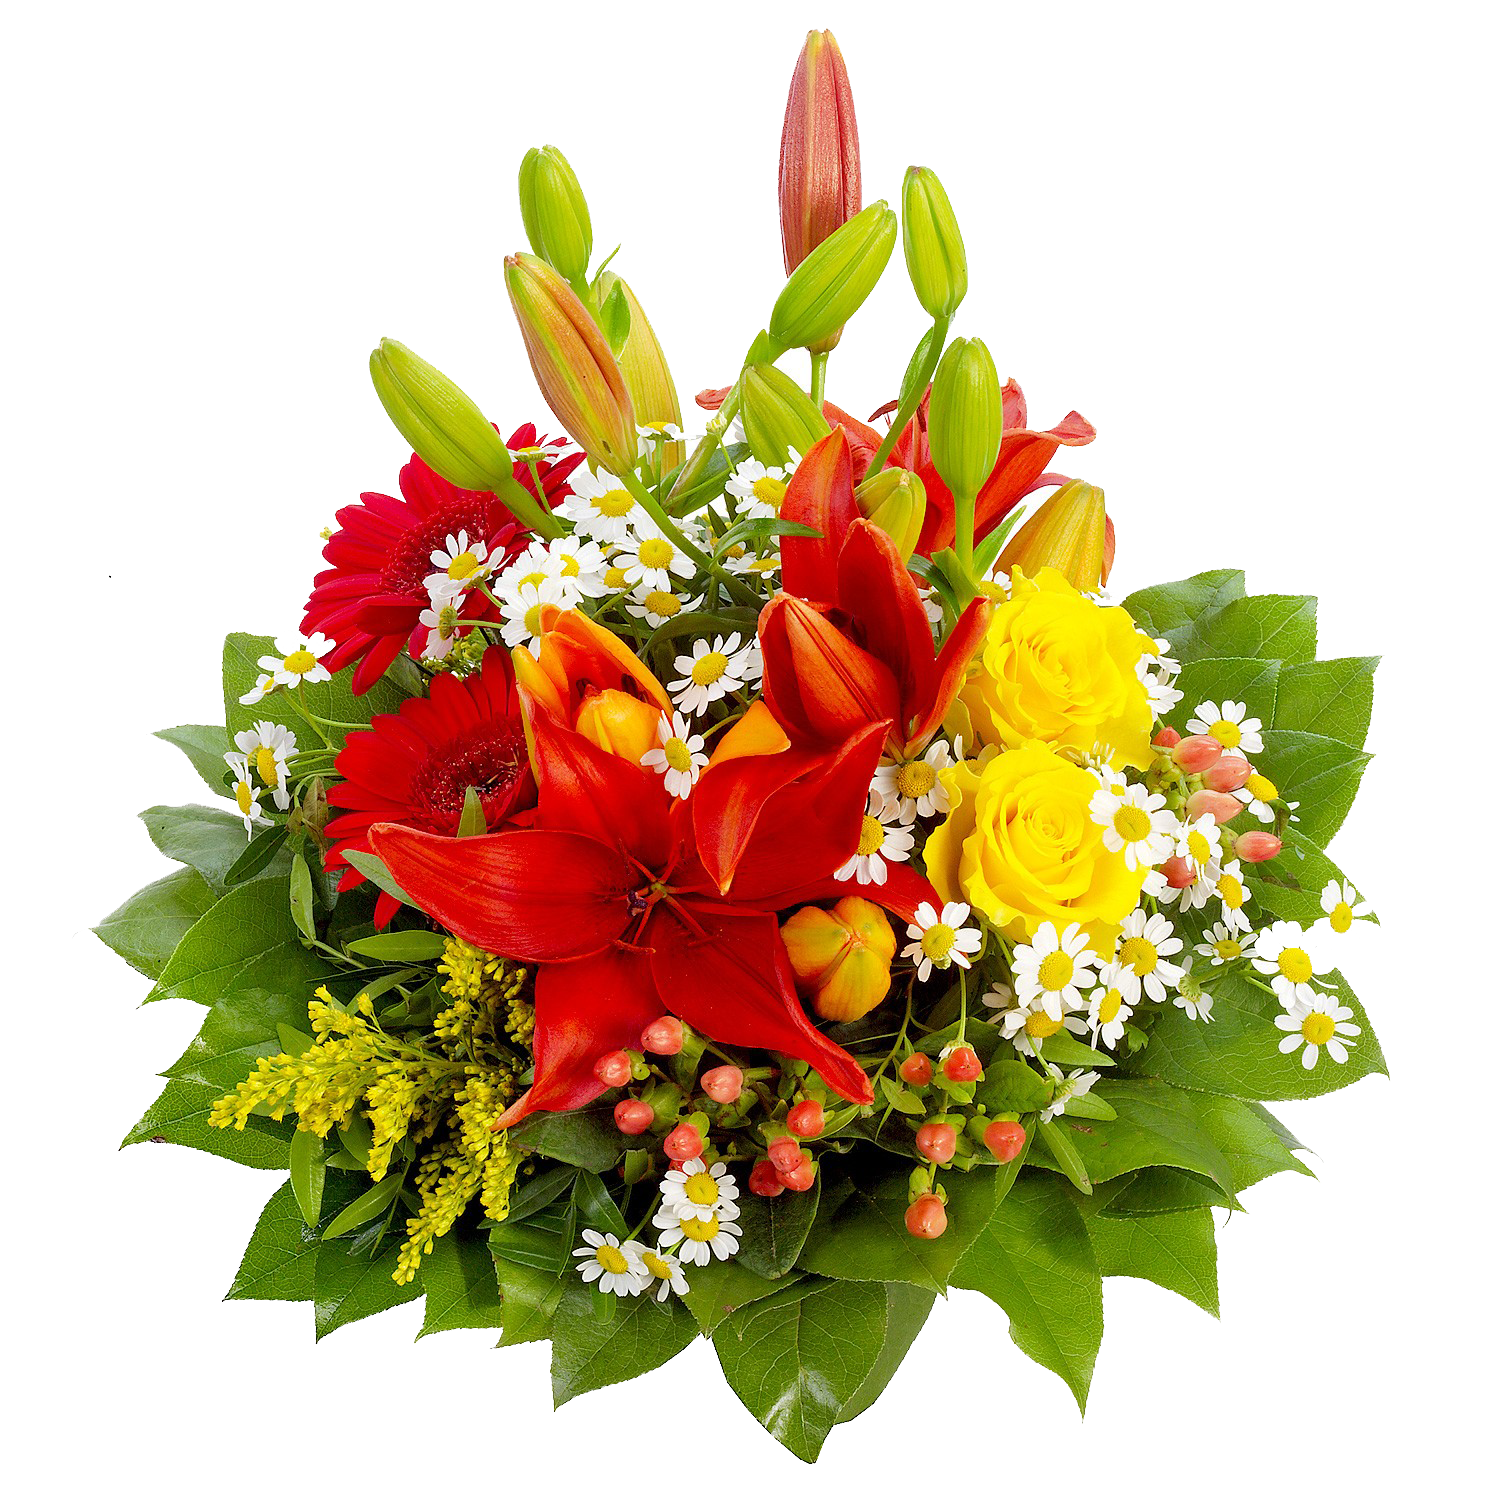 Birthday Flowers Bouquet Png Image Png Mart Flower Bouquet Png Rose Flower Png Flower Bokeh